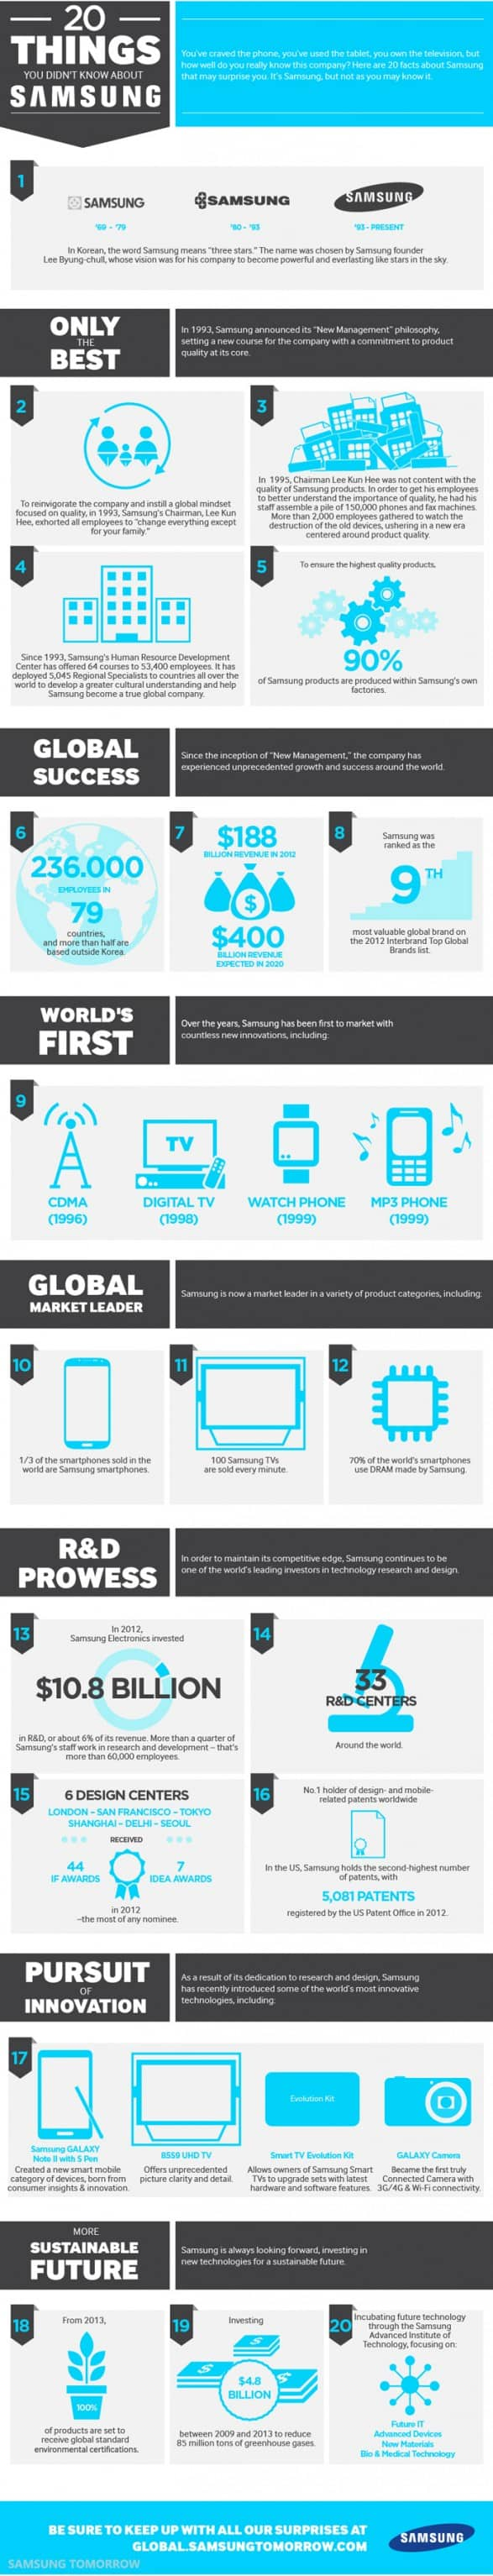 20-things-you-didnt-know-about-samsung_519e26cd700c8_w587 20 things you didn't know about Samsung - InfoGraphic